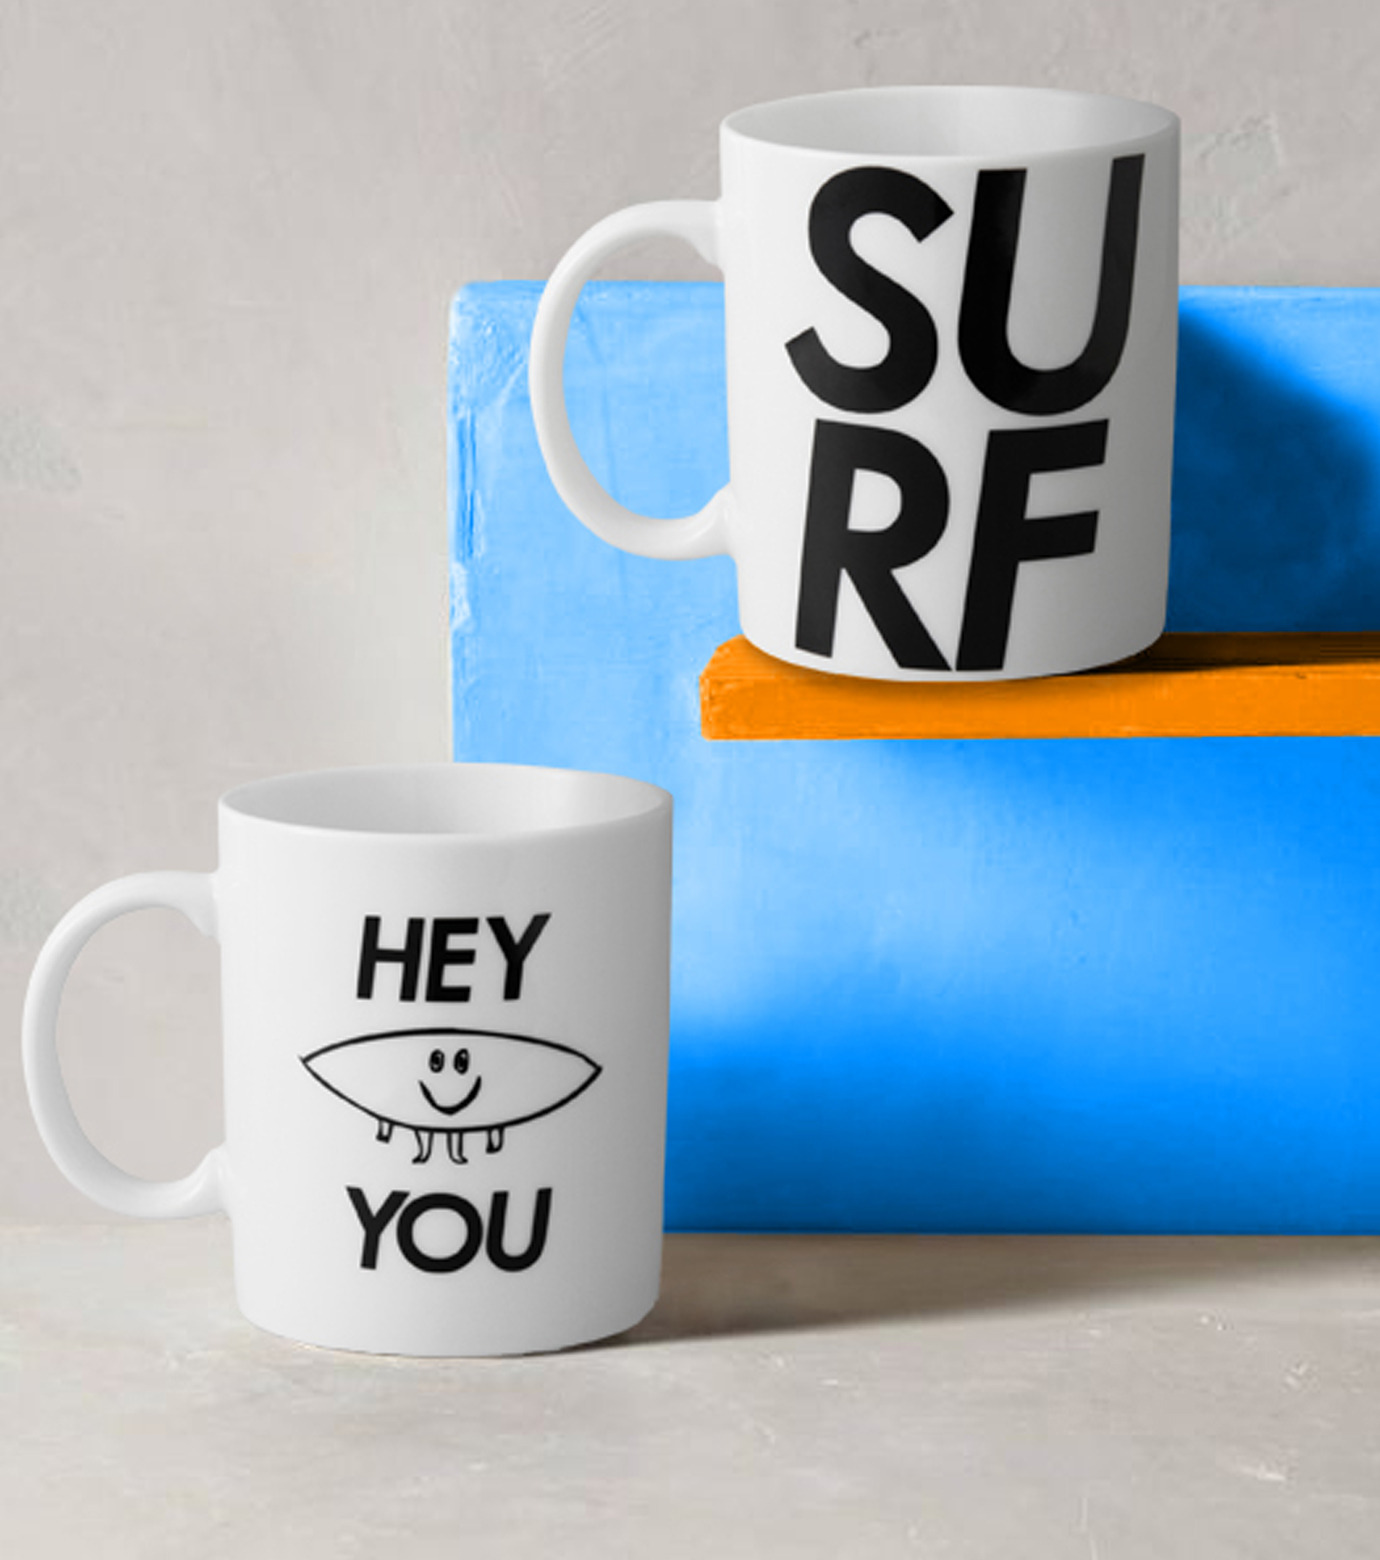 HEY YOU !(ヘイユウ)のBOARD MUG CUP-WHITE(キッチン/kitchen)-BOAD-MAG-4 拡大詳細画像3